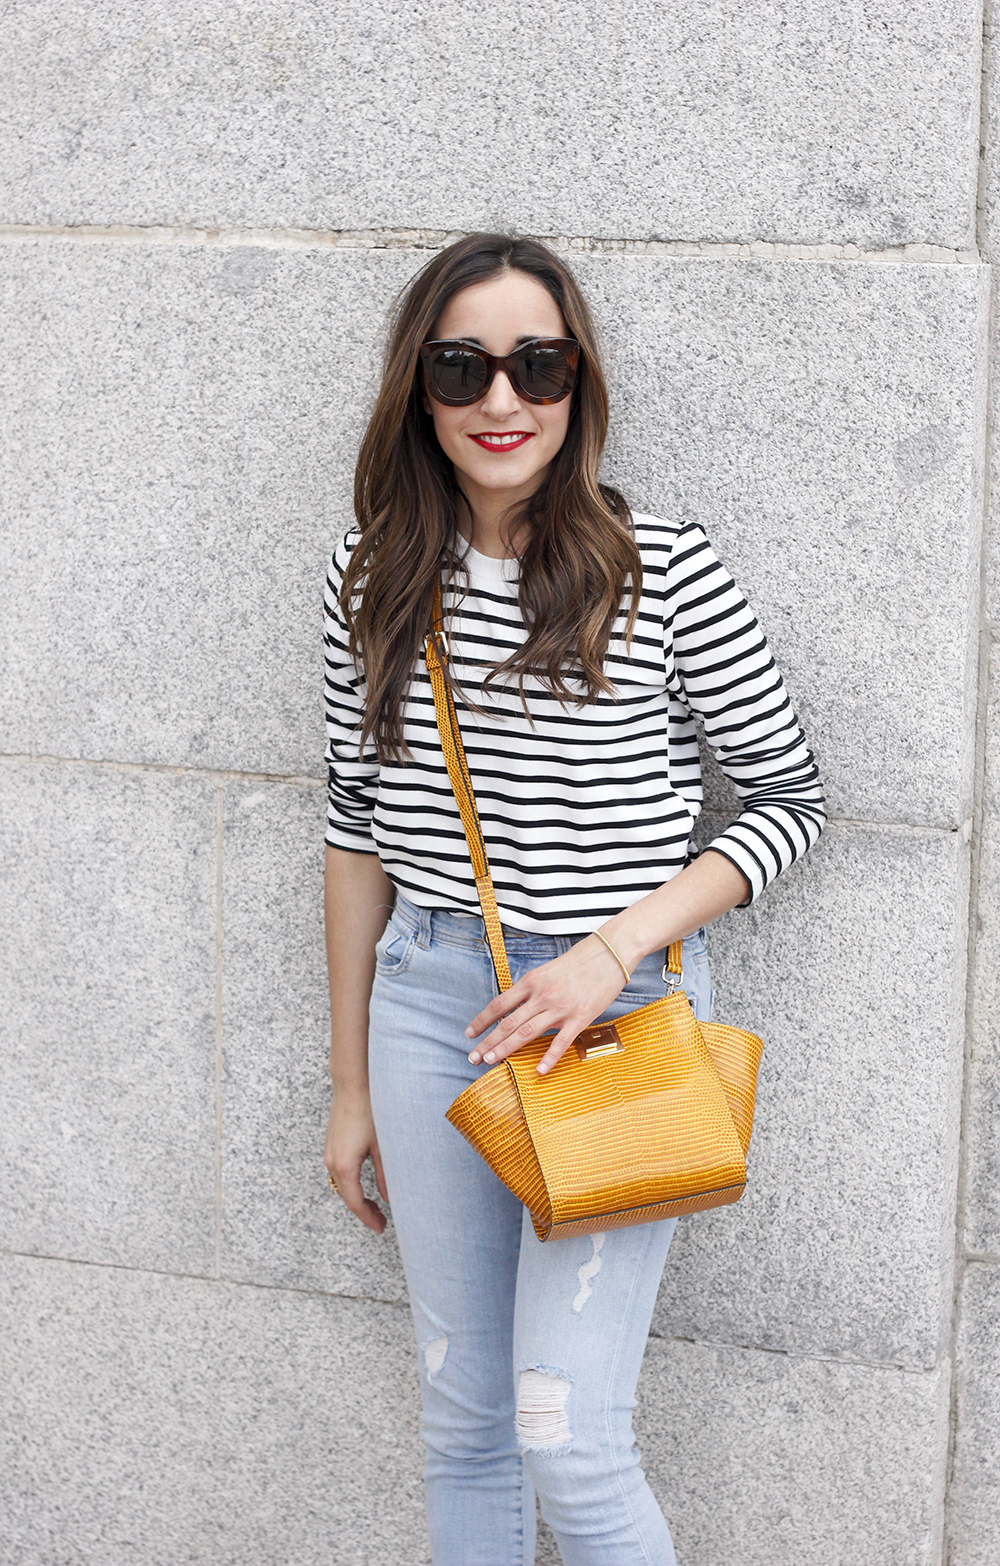 navy stripes denim jeans mustard bag uterqüe heels outfit fashion style07